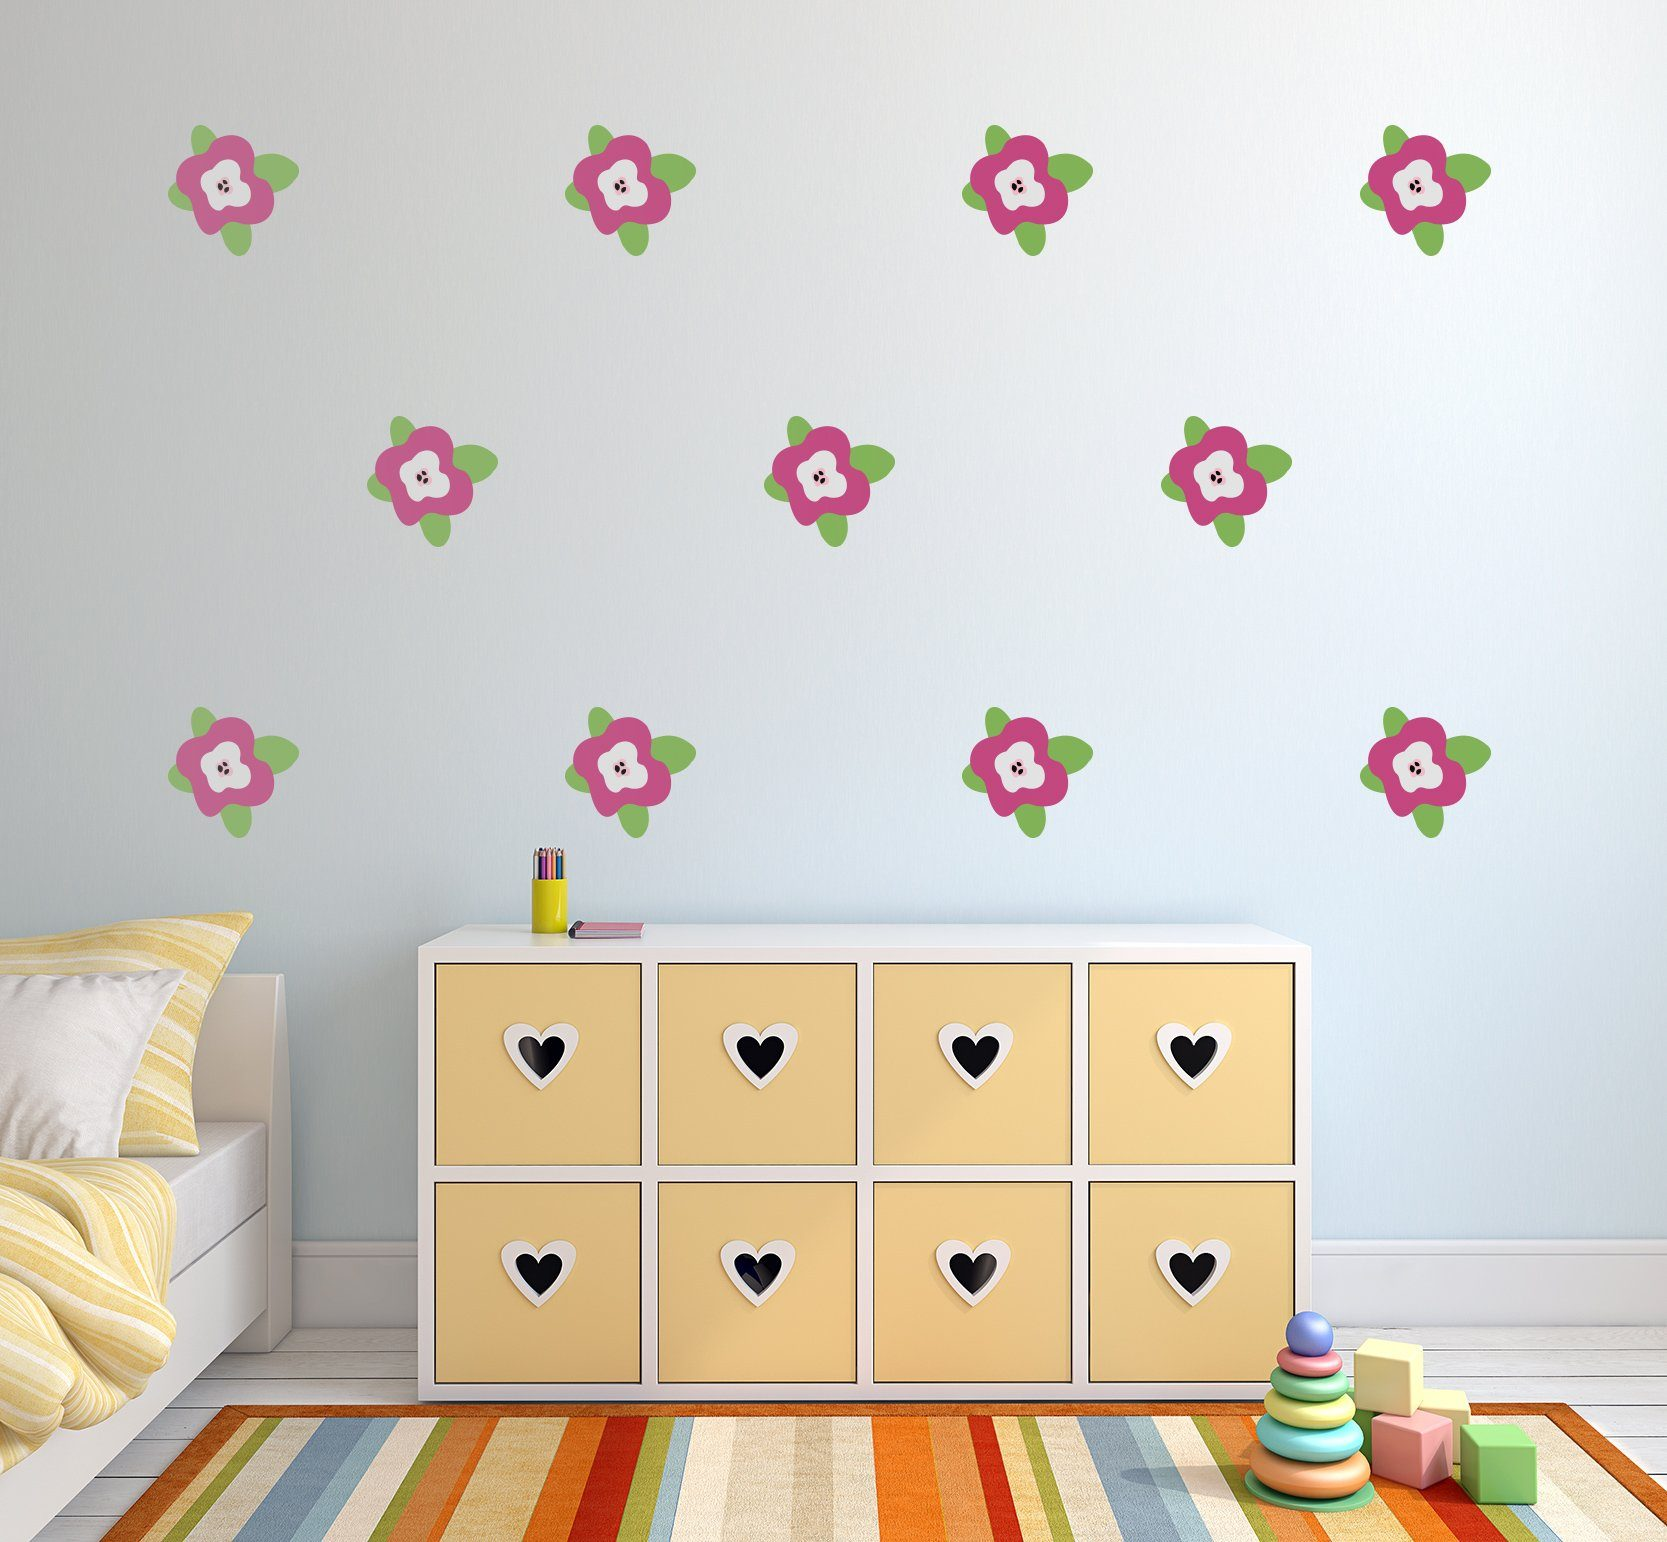 Flower Wall Decals - Floral Nursery Wall Art - Garden Theme Stickers For Baby Boy And Baby Girl Rooms